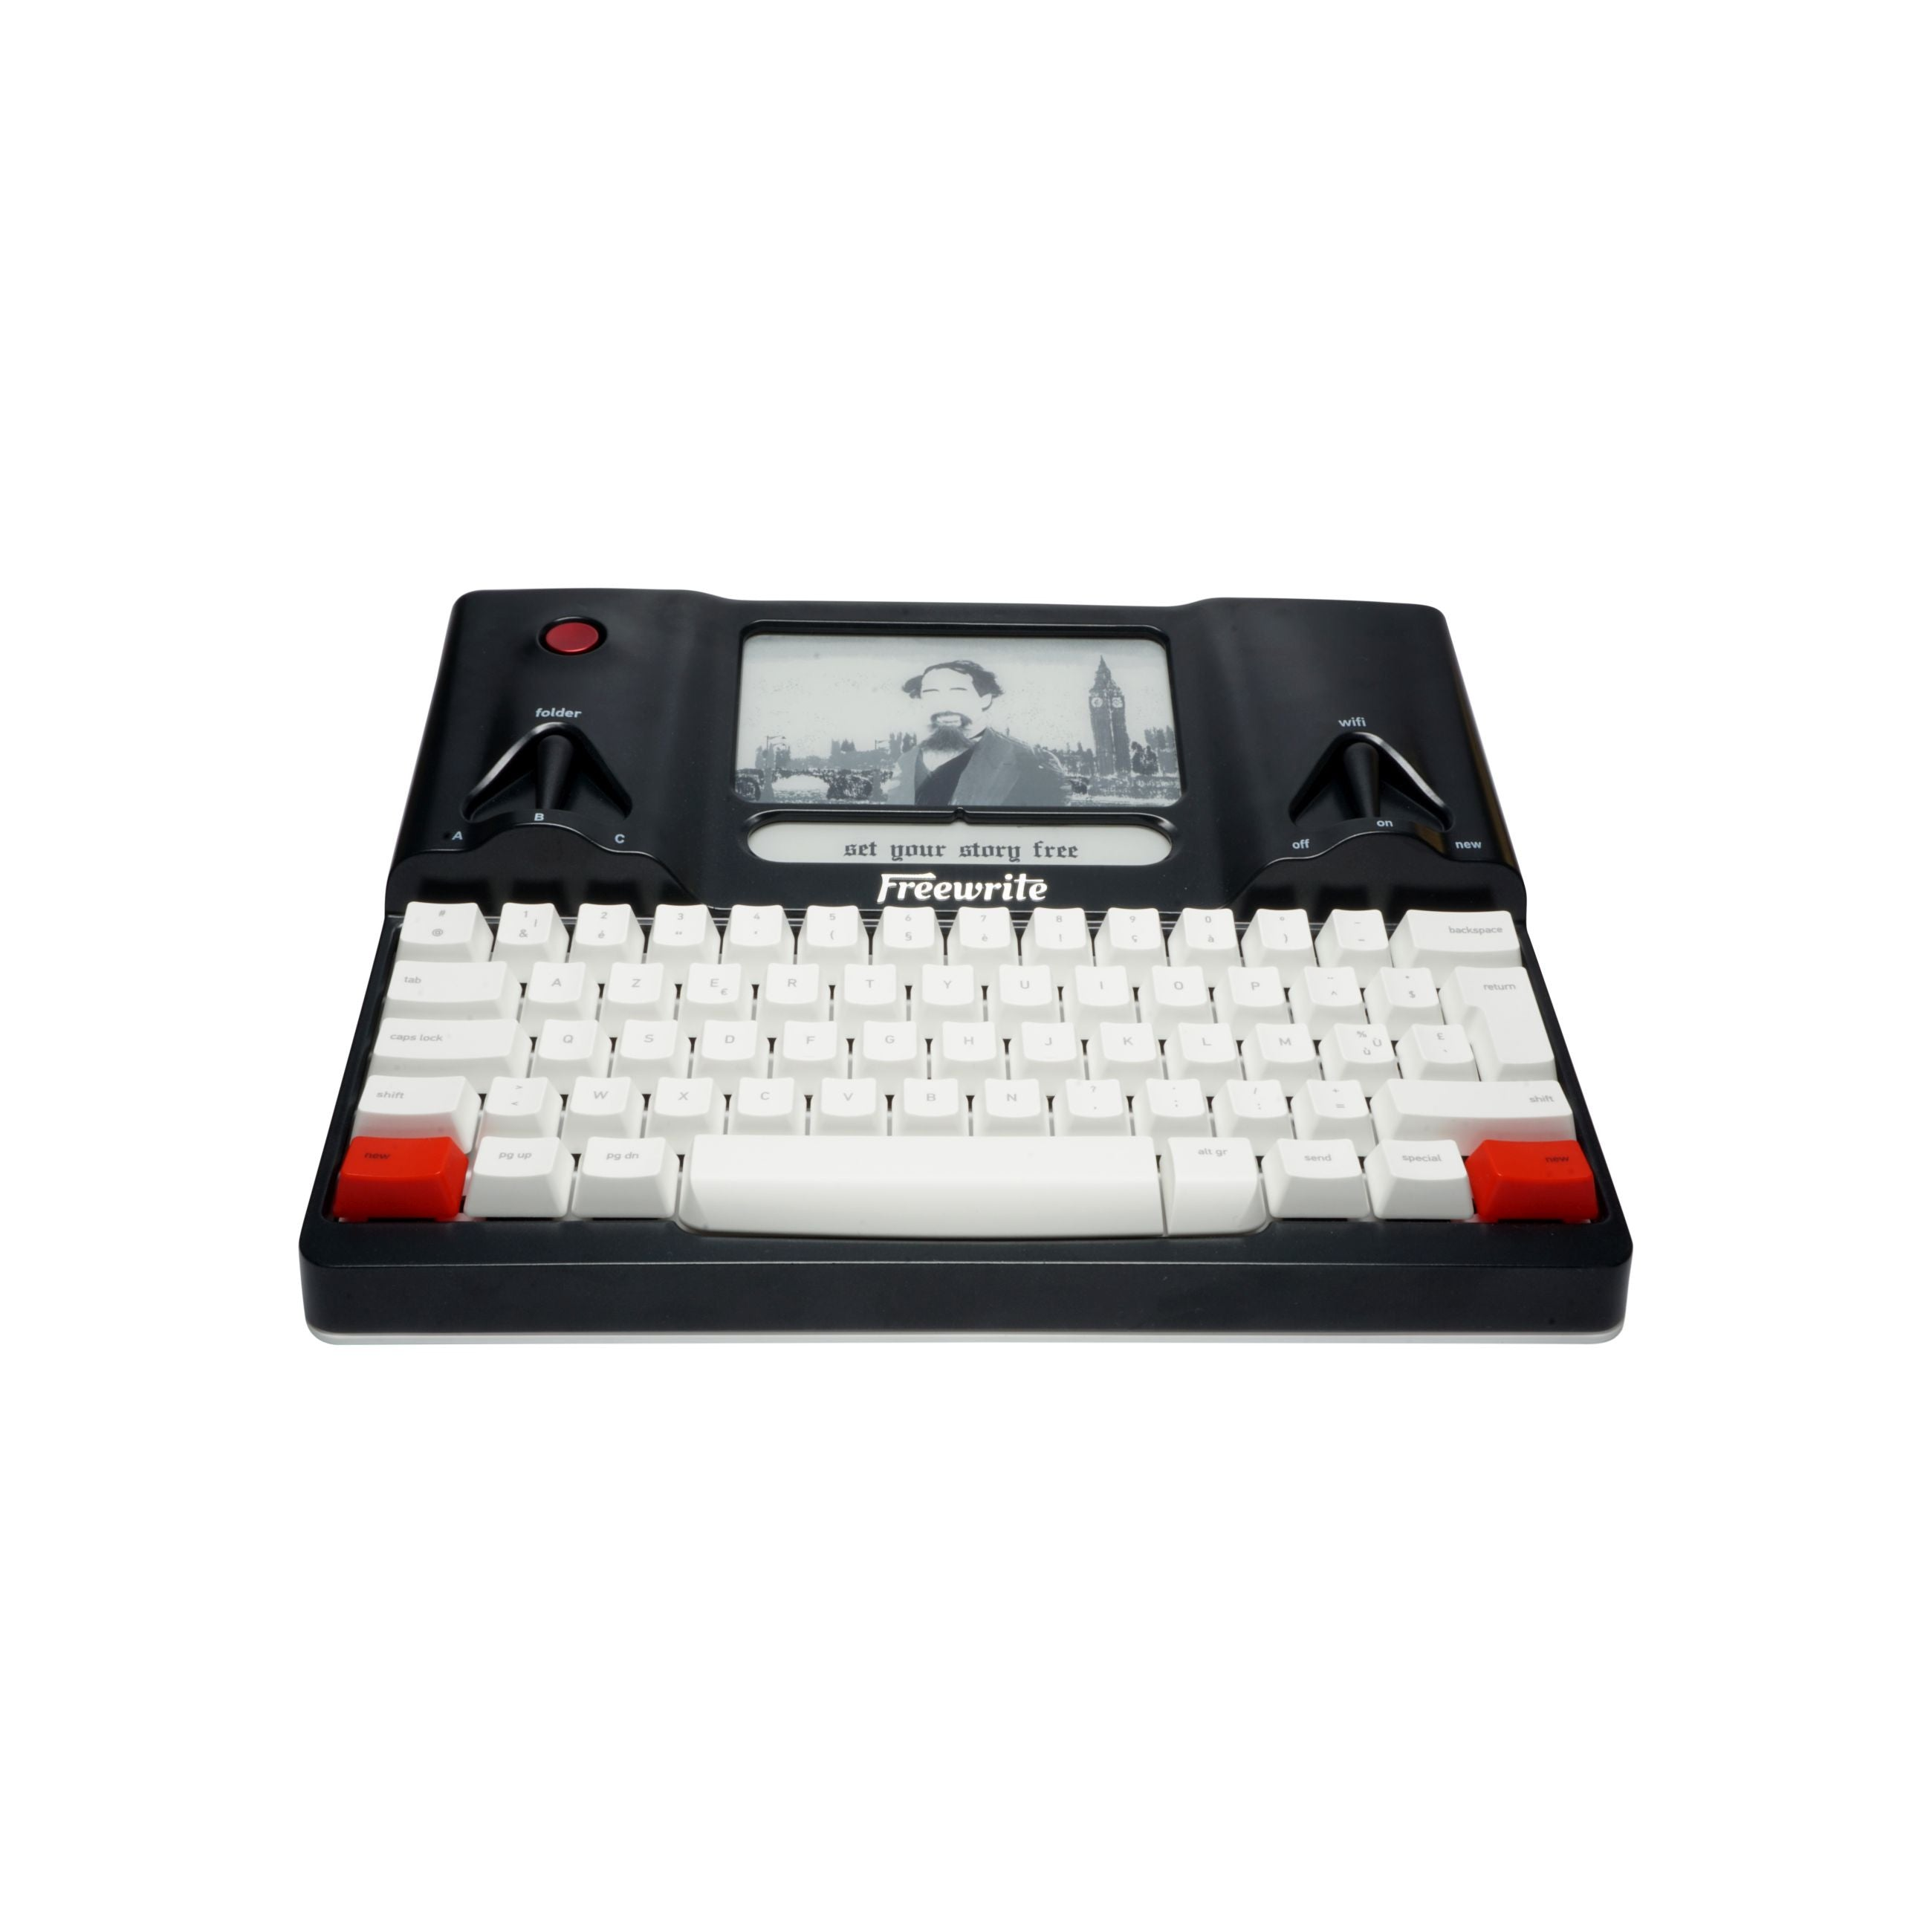 Language Keycap Sets for Freewrite